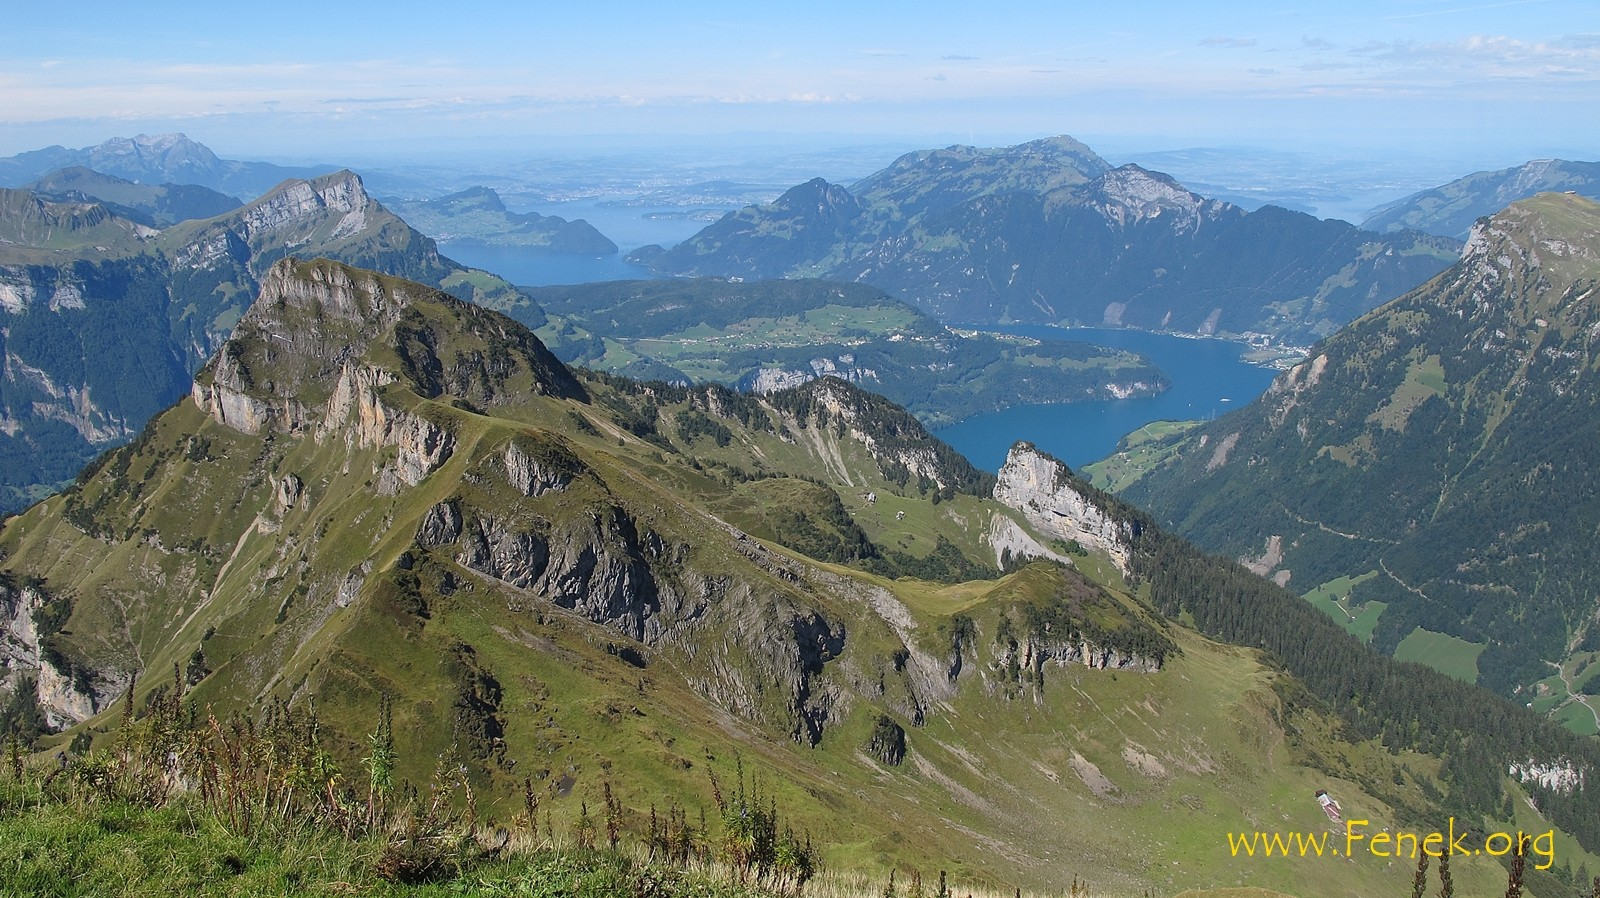 links Rophaien - rechts Rigi